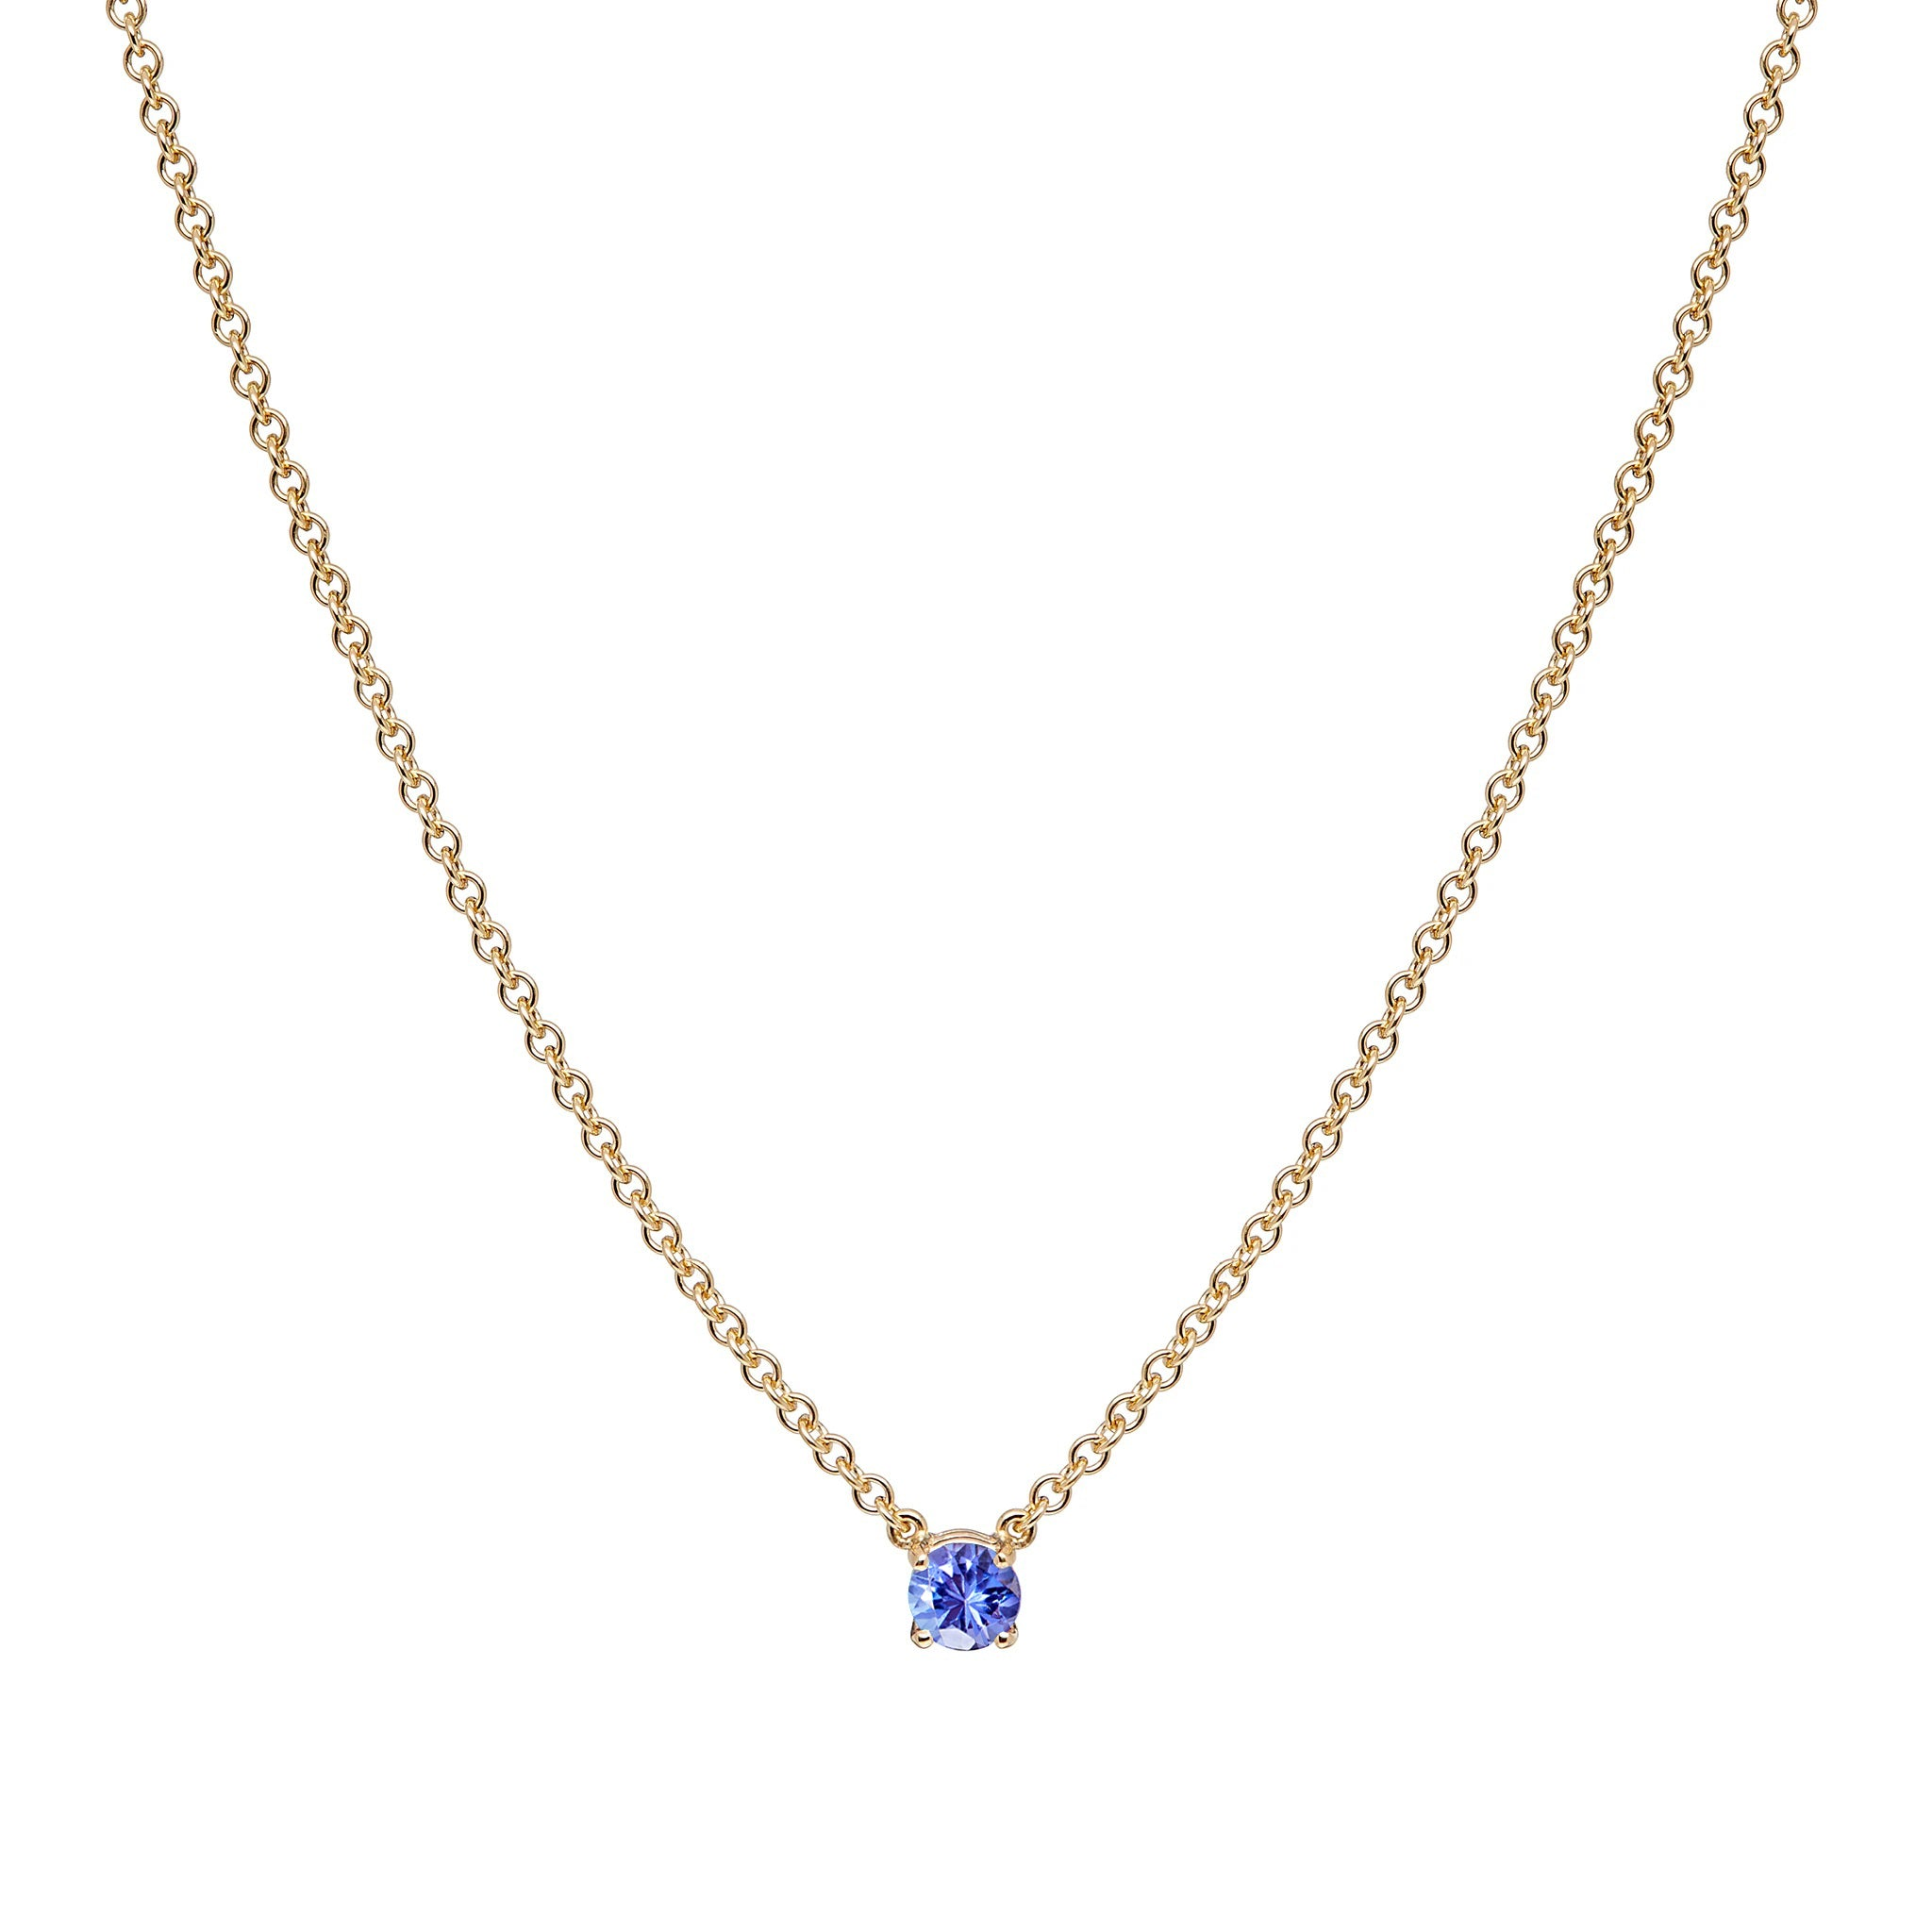 Mana Necklace - Tanzanite